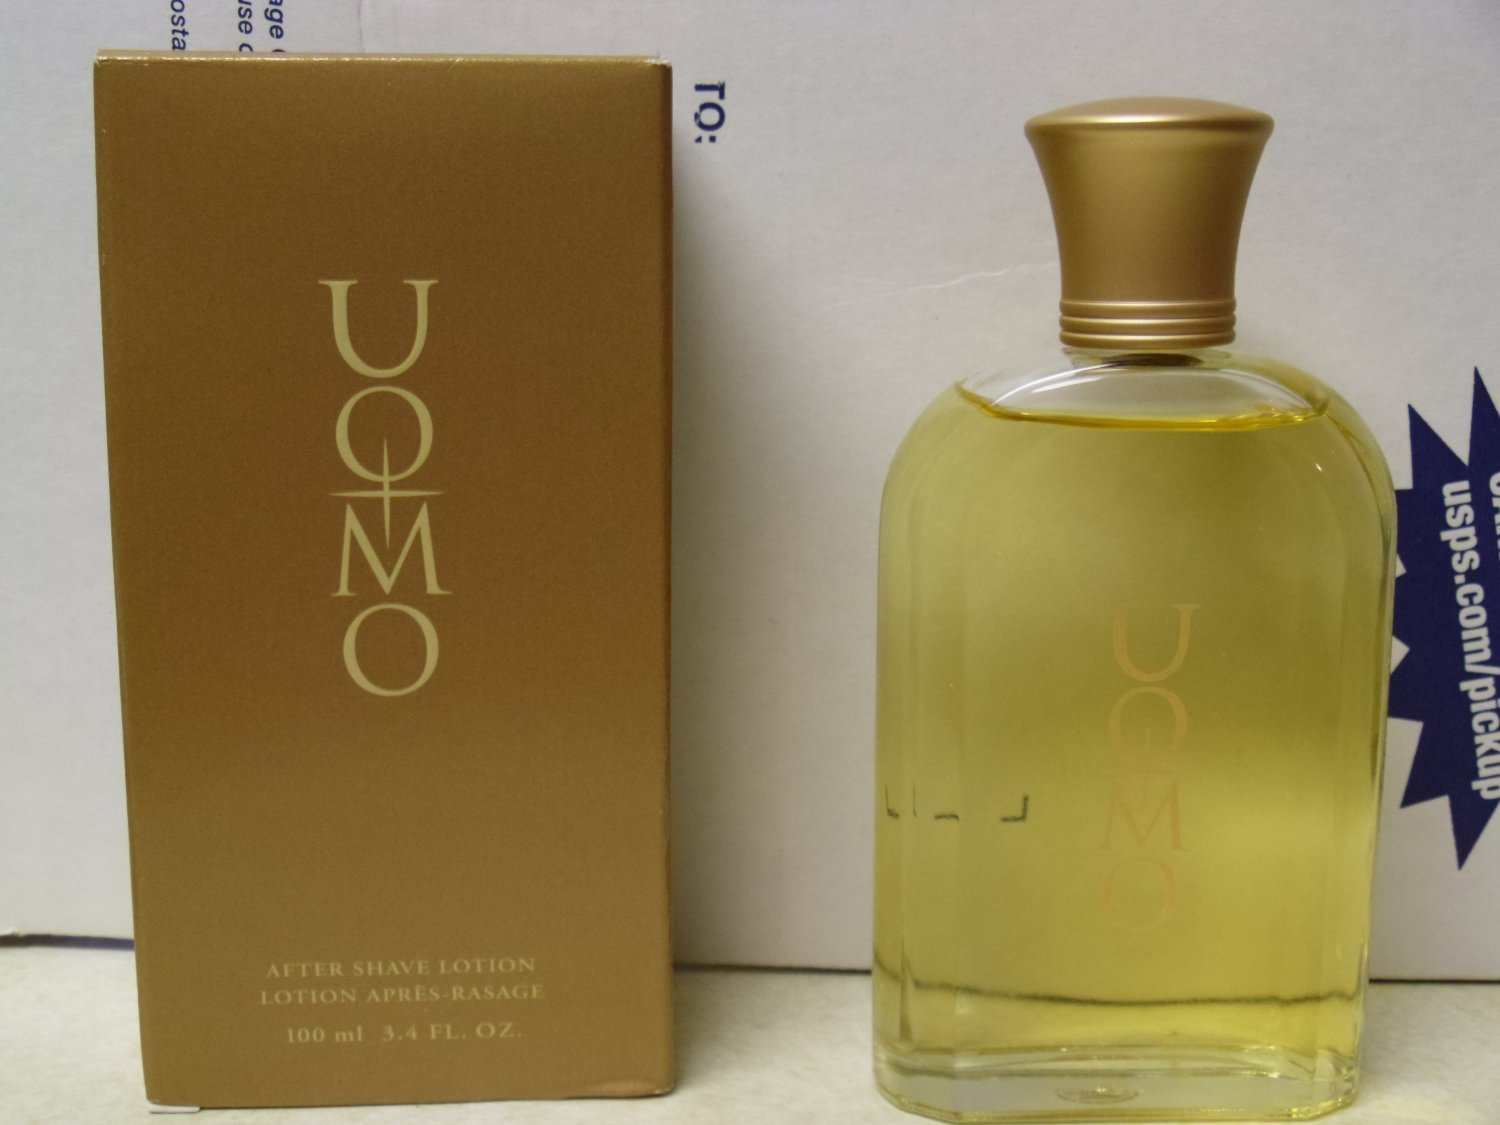 New Avon Uomo Men Fragrance After Shave Lotion 2000